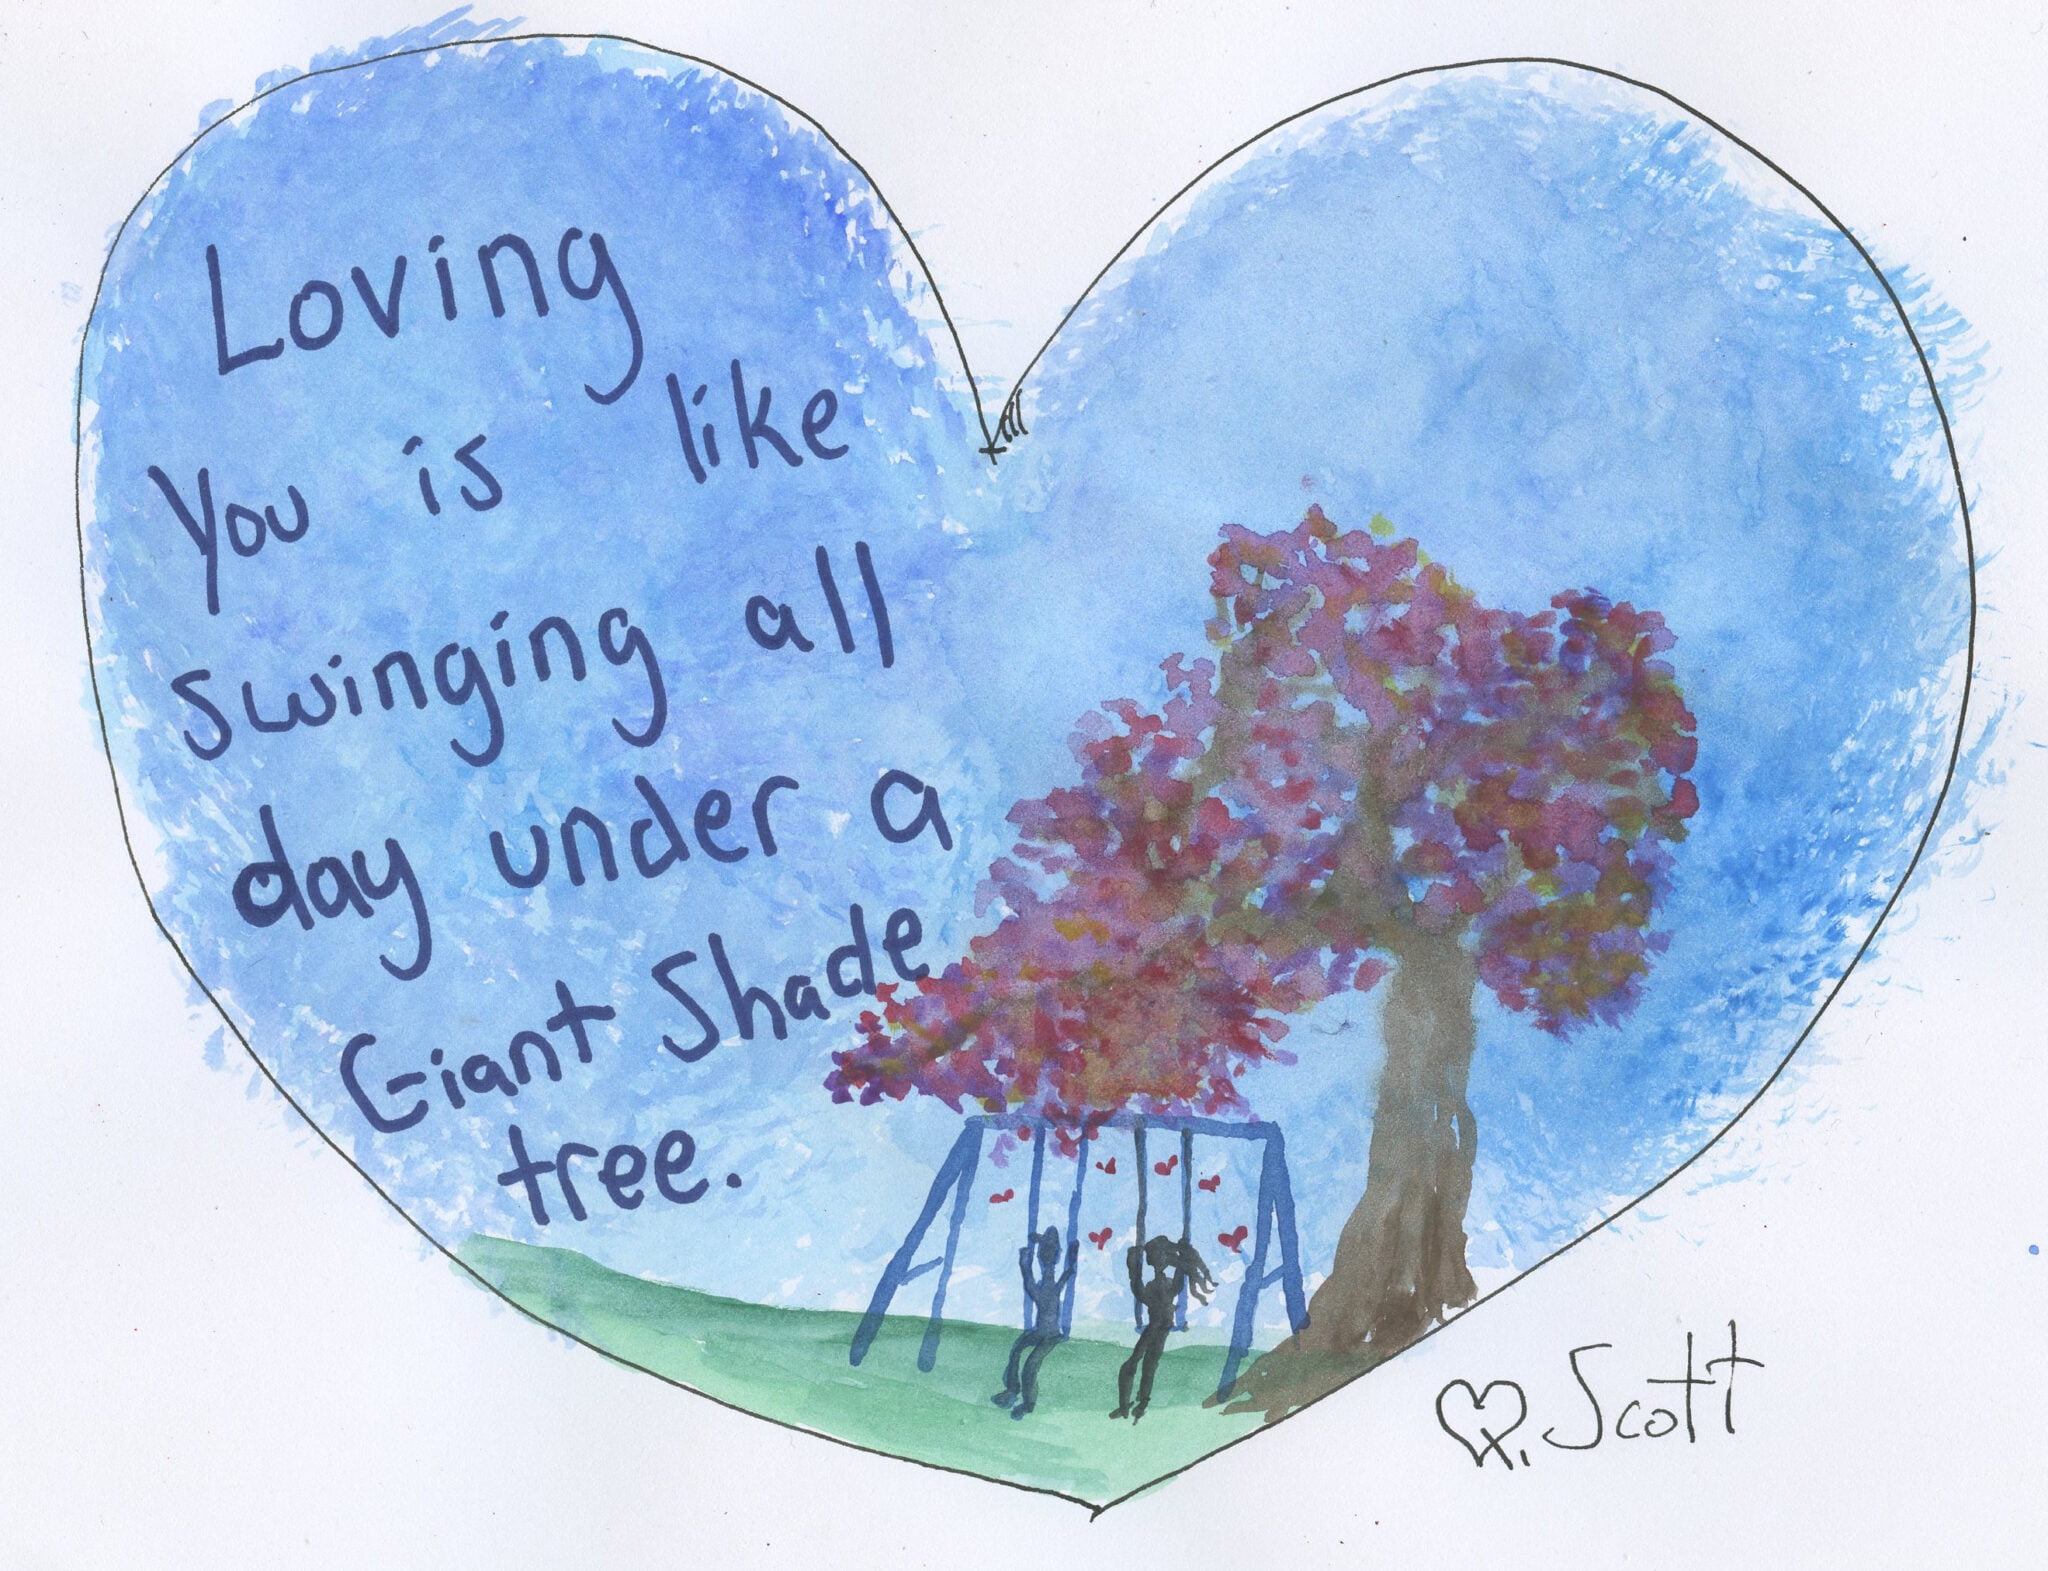 Loving you is like swinging all day under a giant shade tree